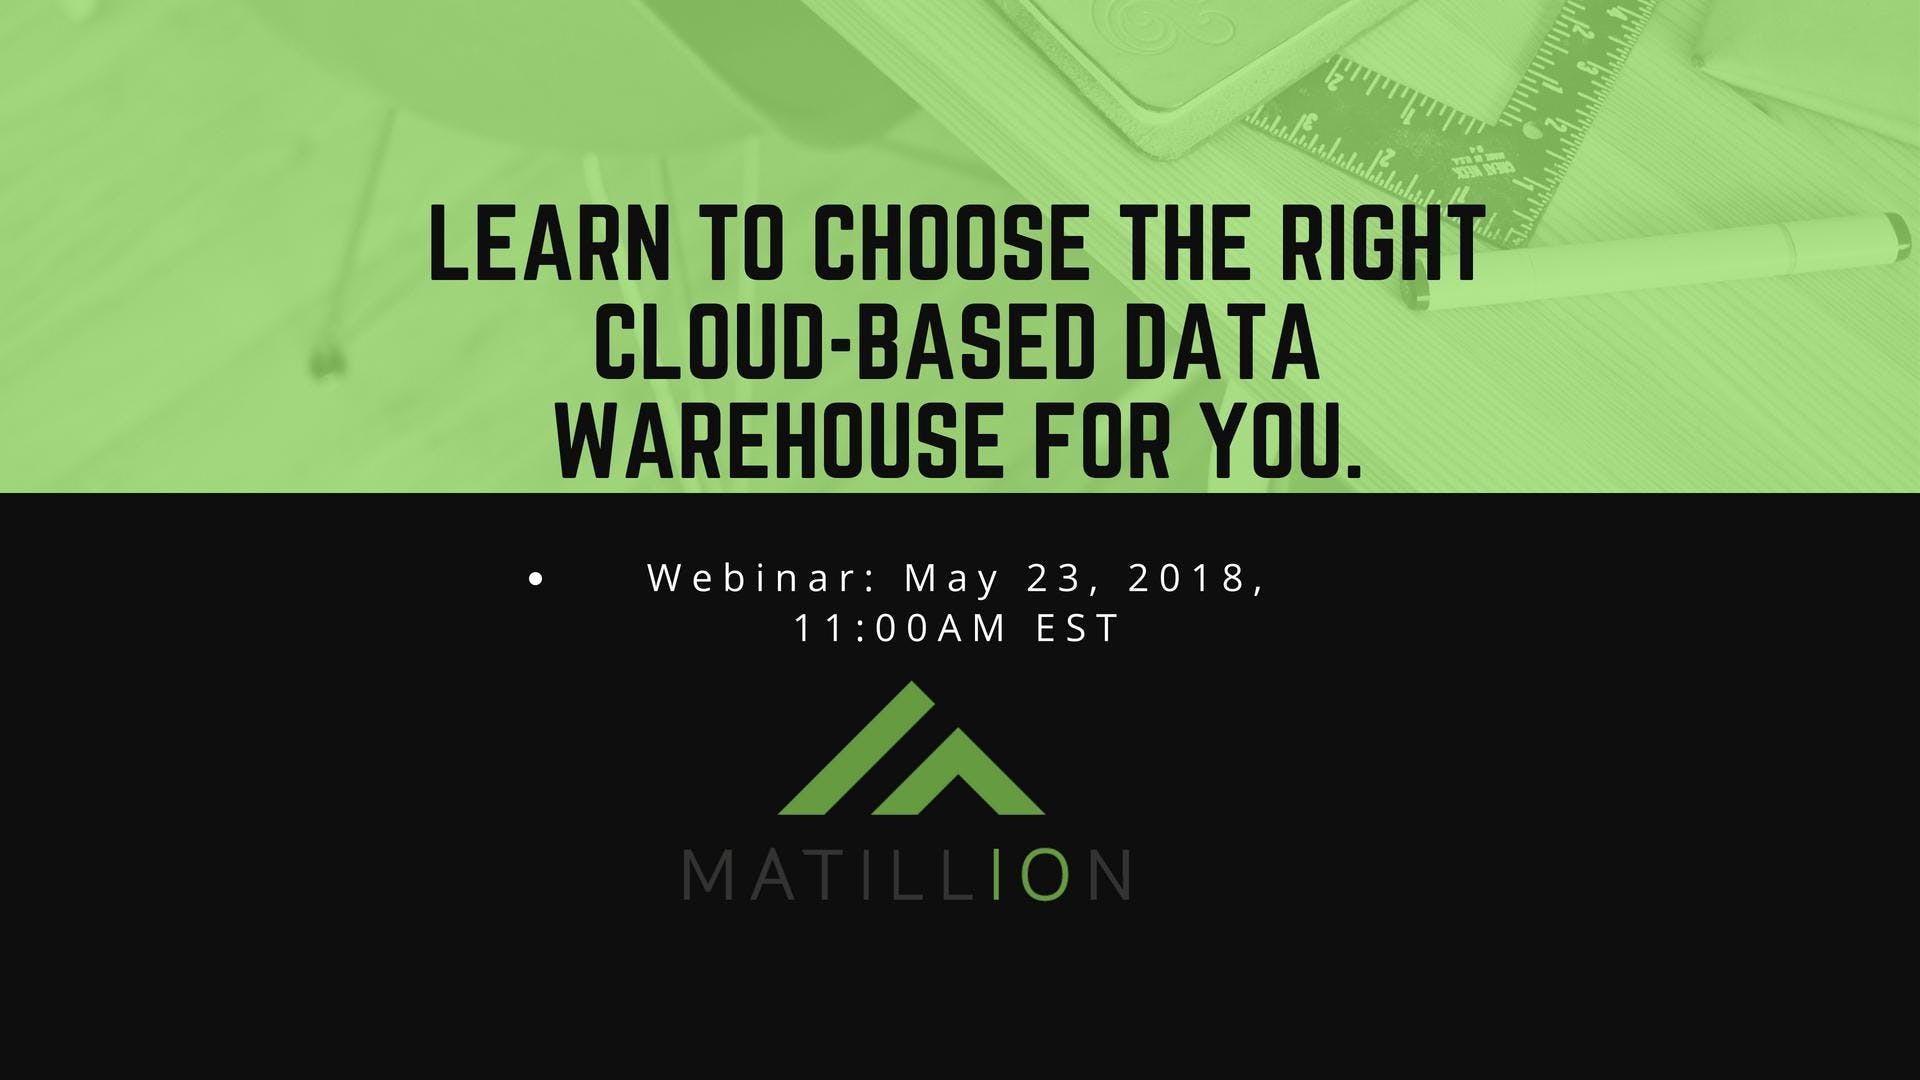 Learn to choose the right cloud-based data wa